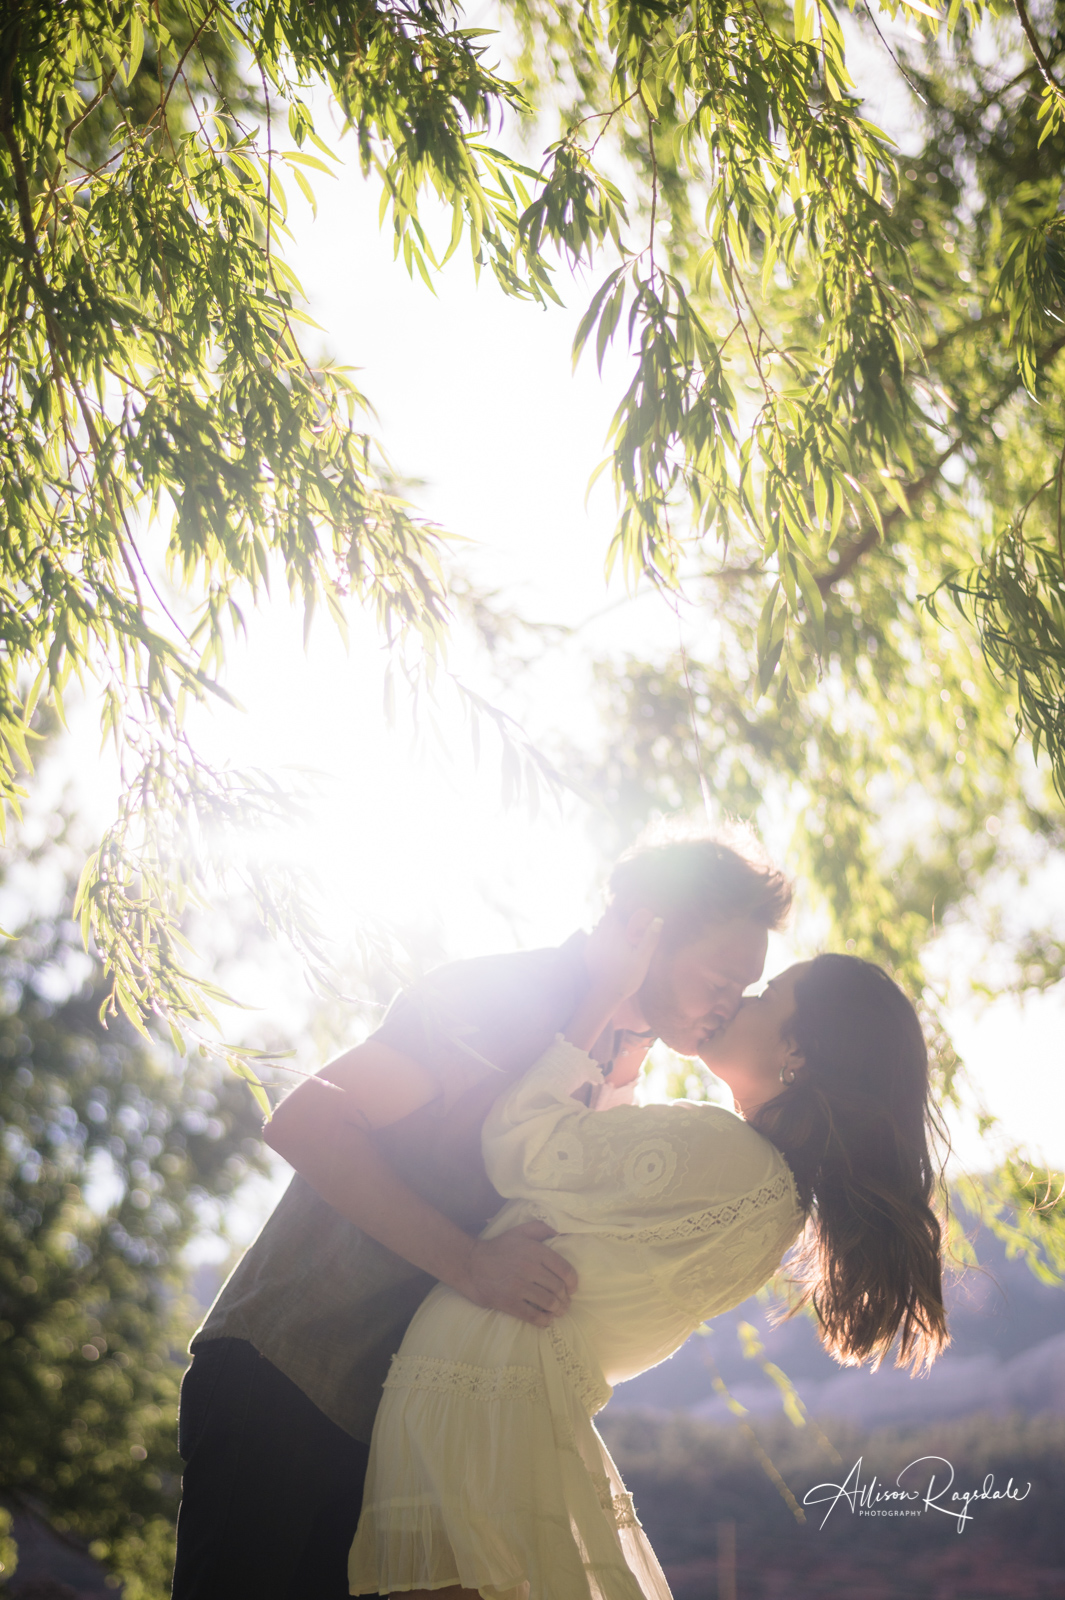 Brooke & Wyatt's Engagement Session at Baker's Bridge & River Bend Ranch